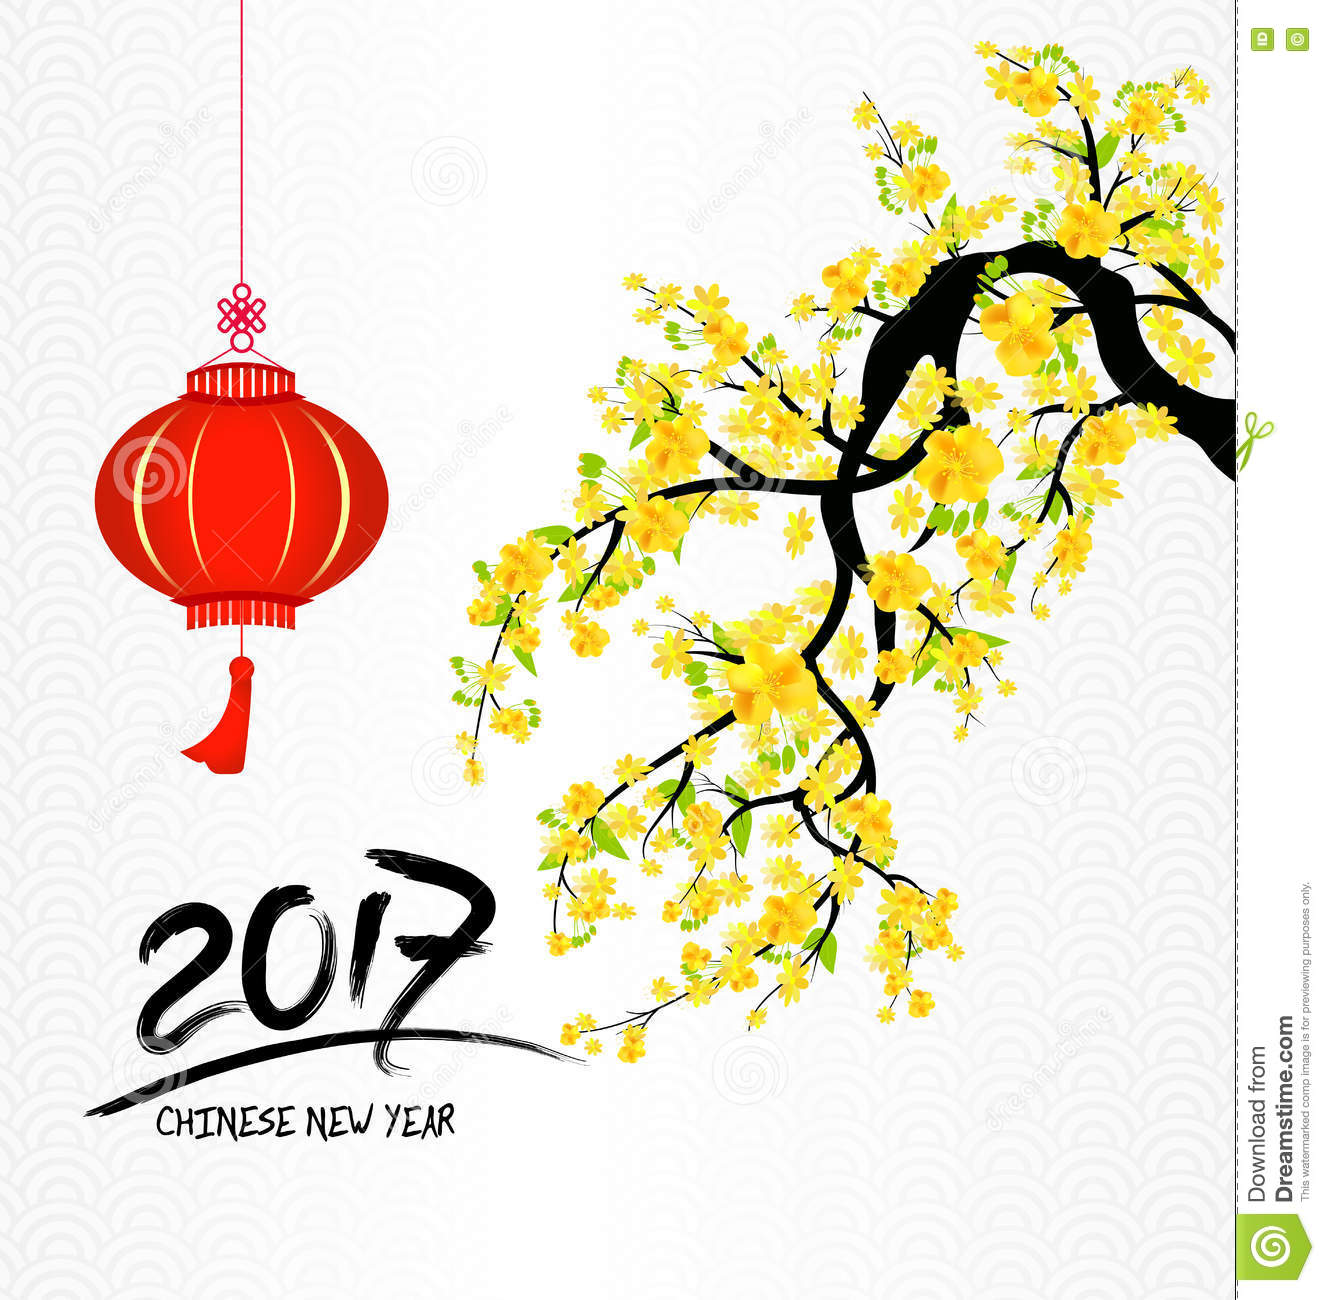 Happy New Year 2017 And Flowers Stock Vector - Illustration of ...